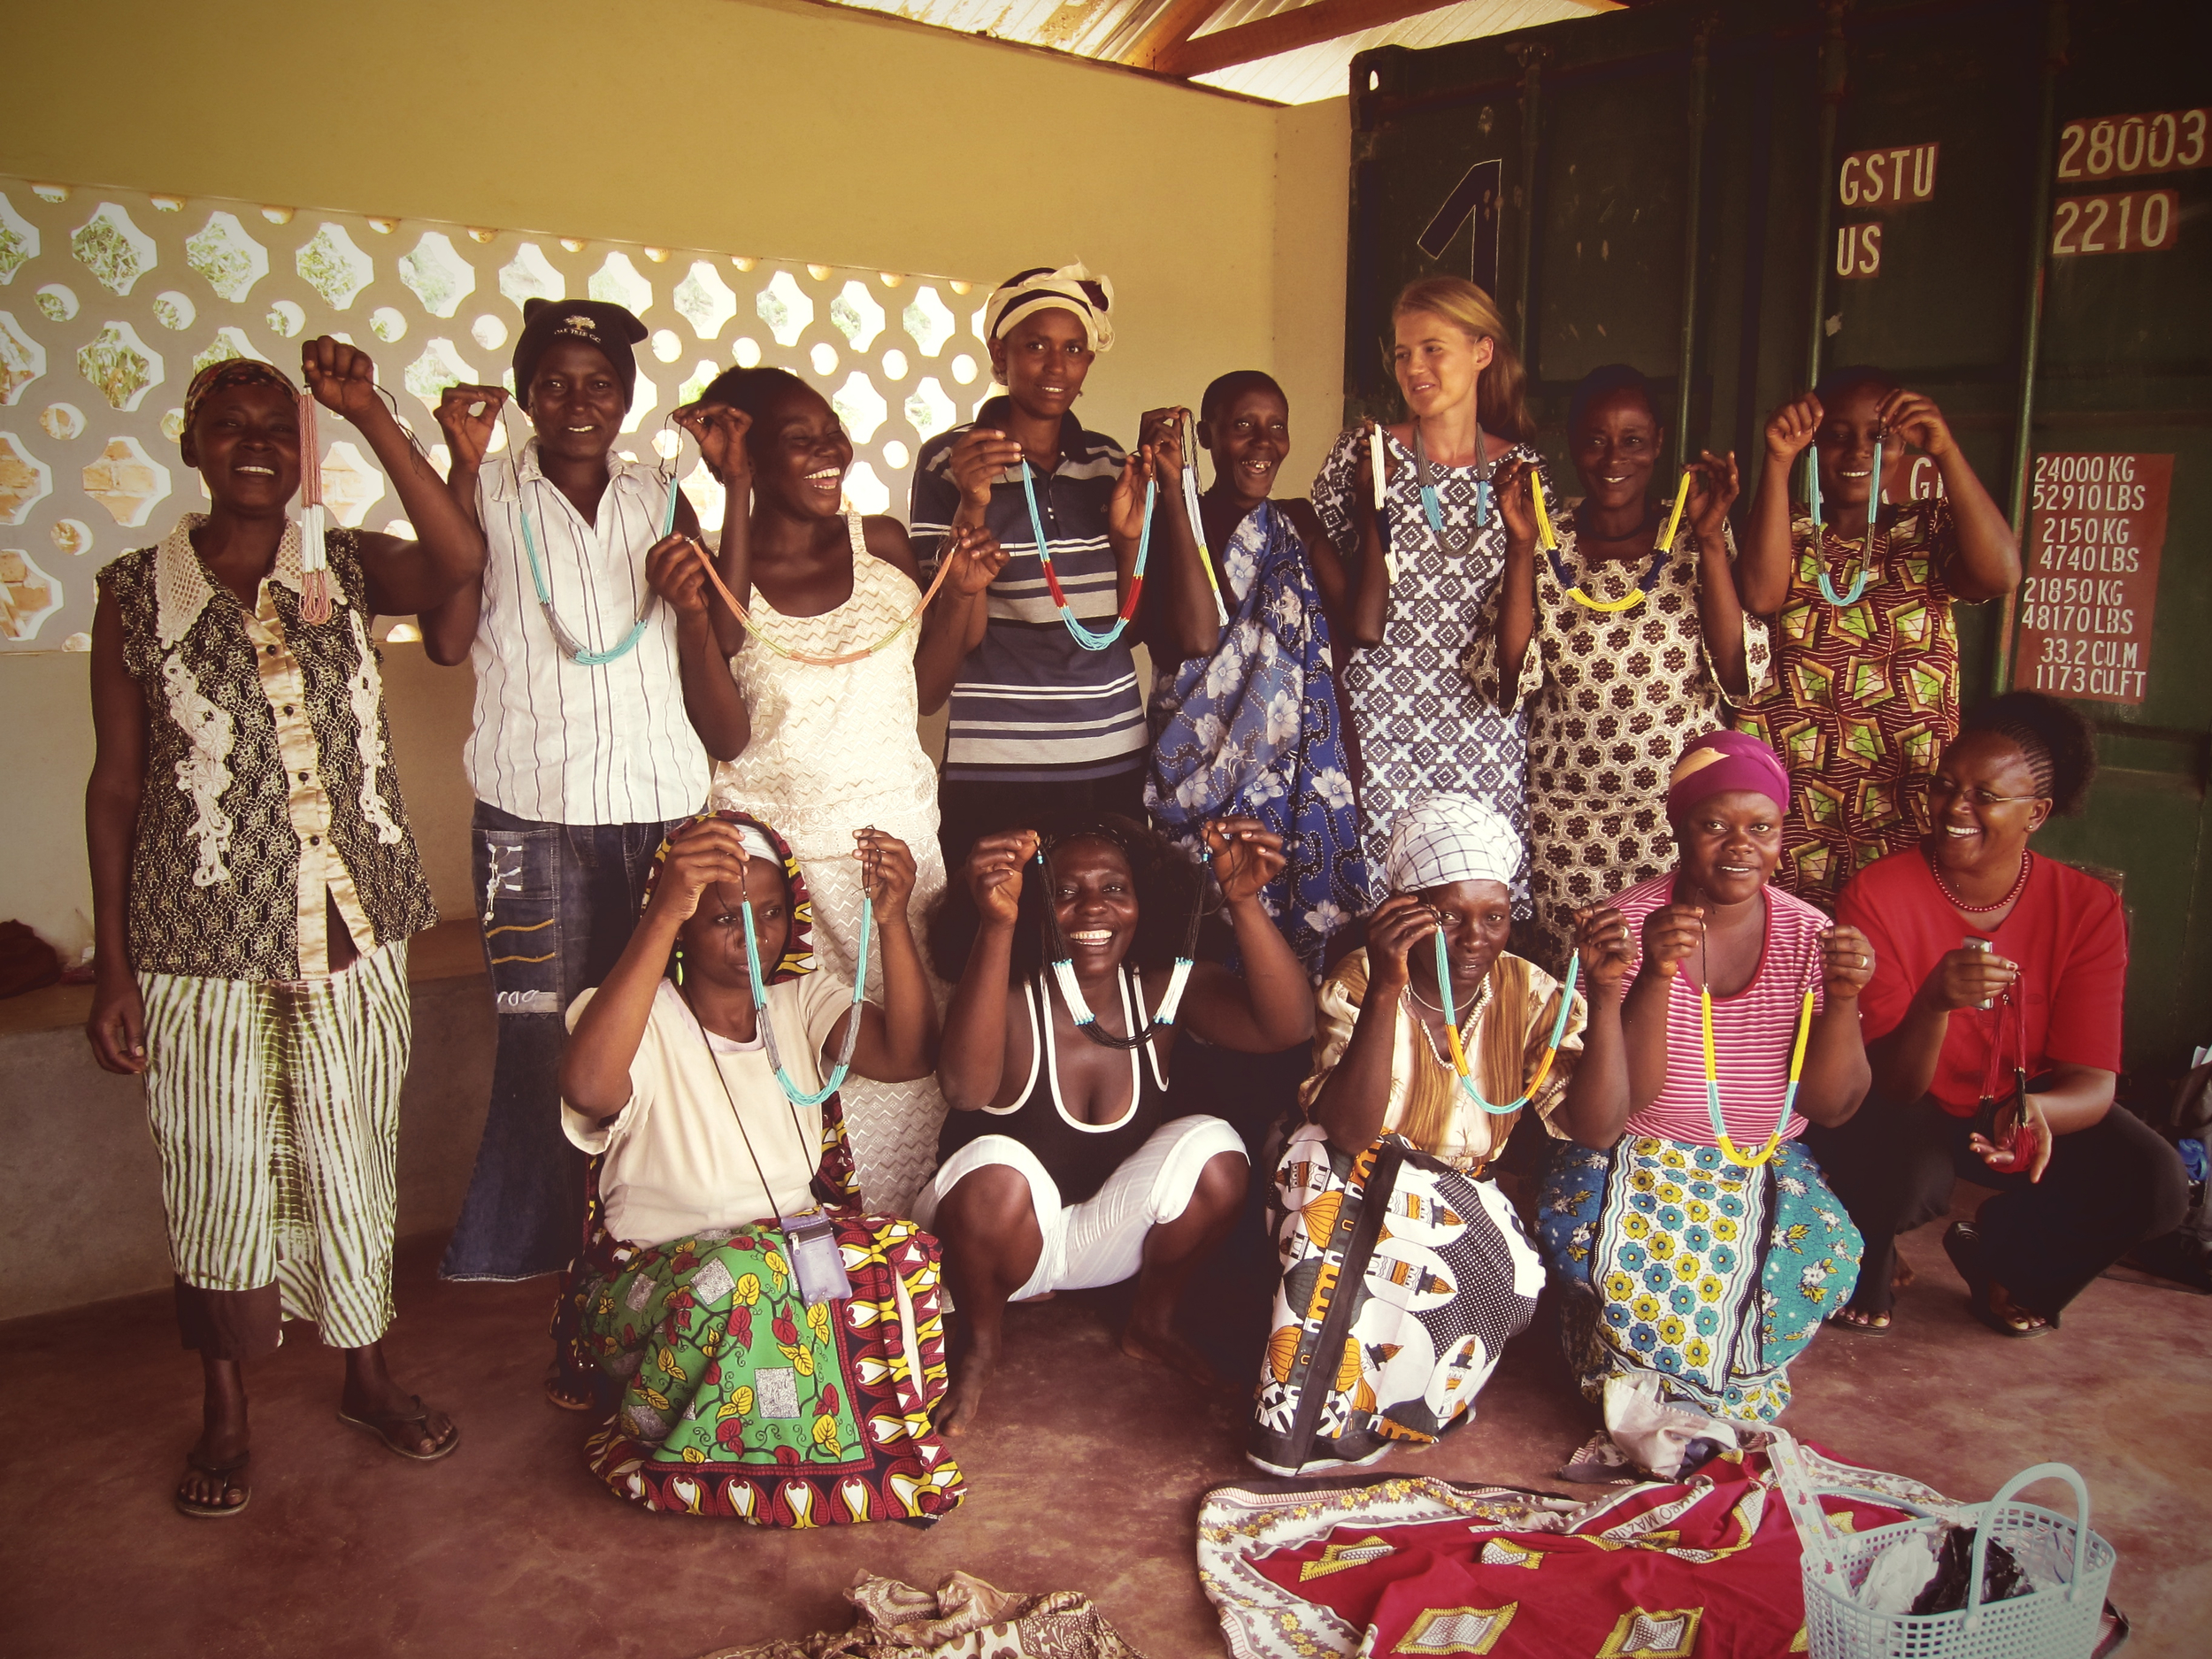 Here I am with the group of women artisans I worked with in Kenya—such remarkable and resilient women!